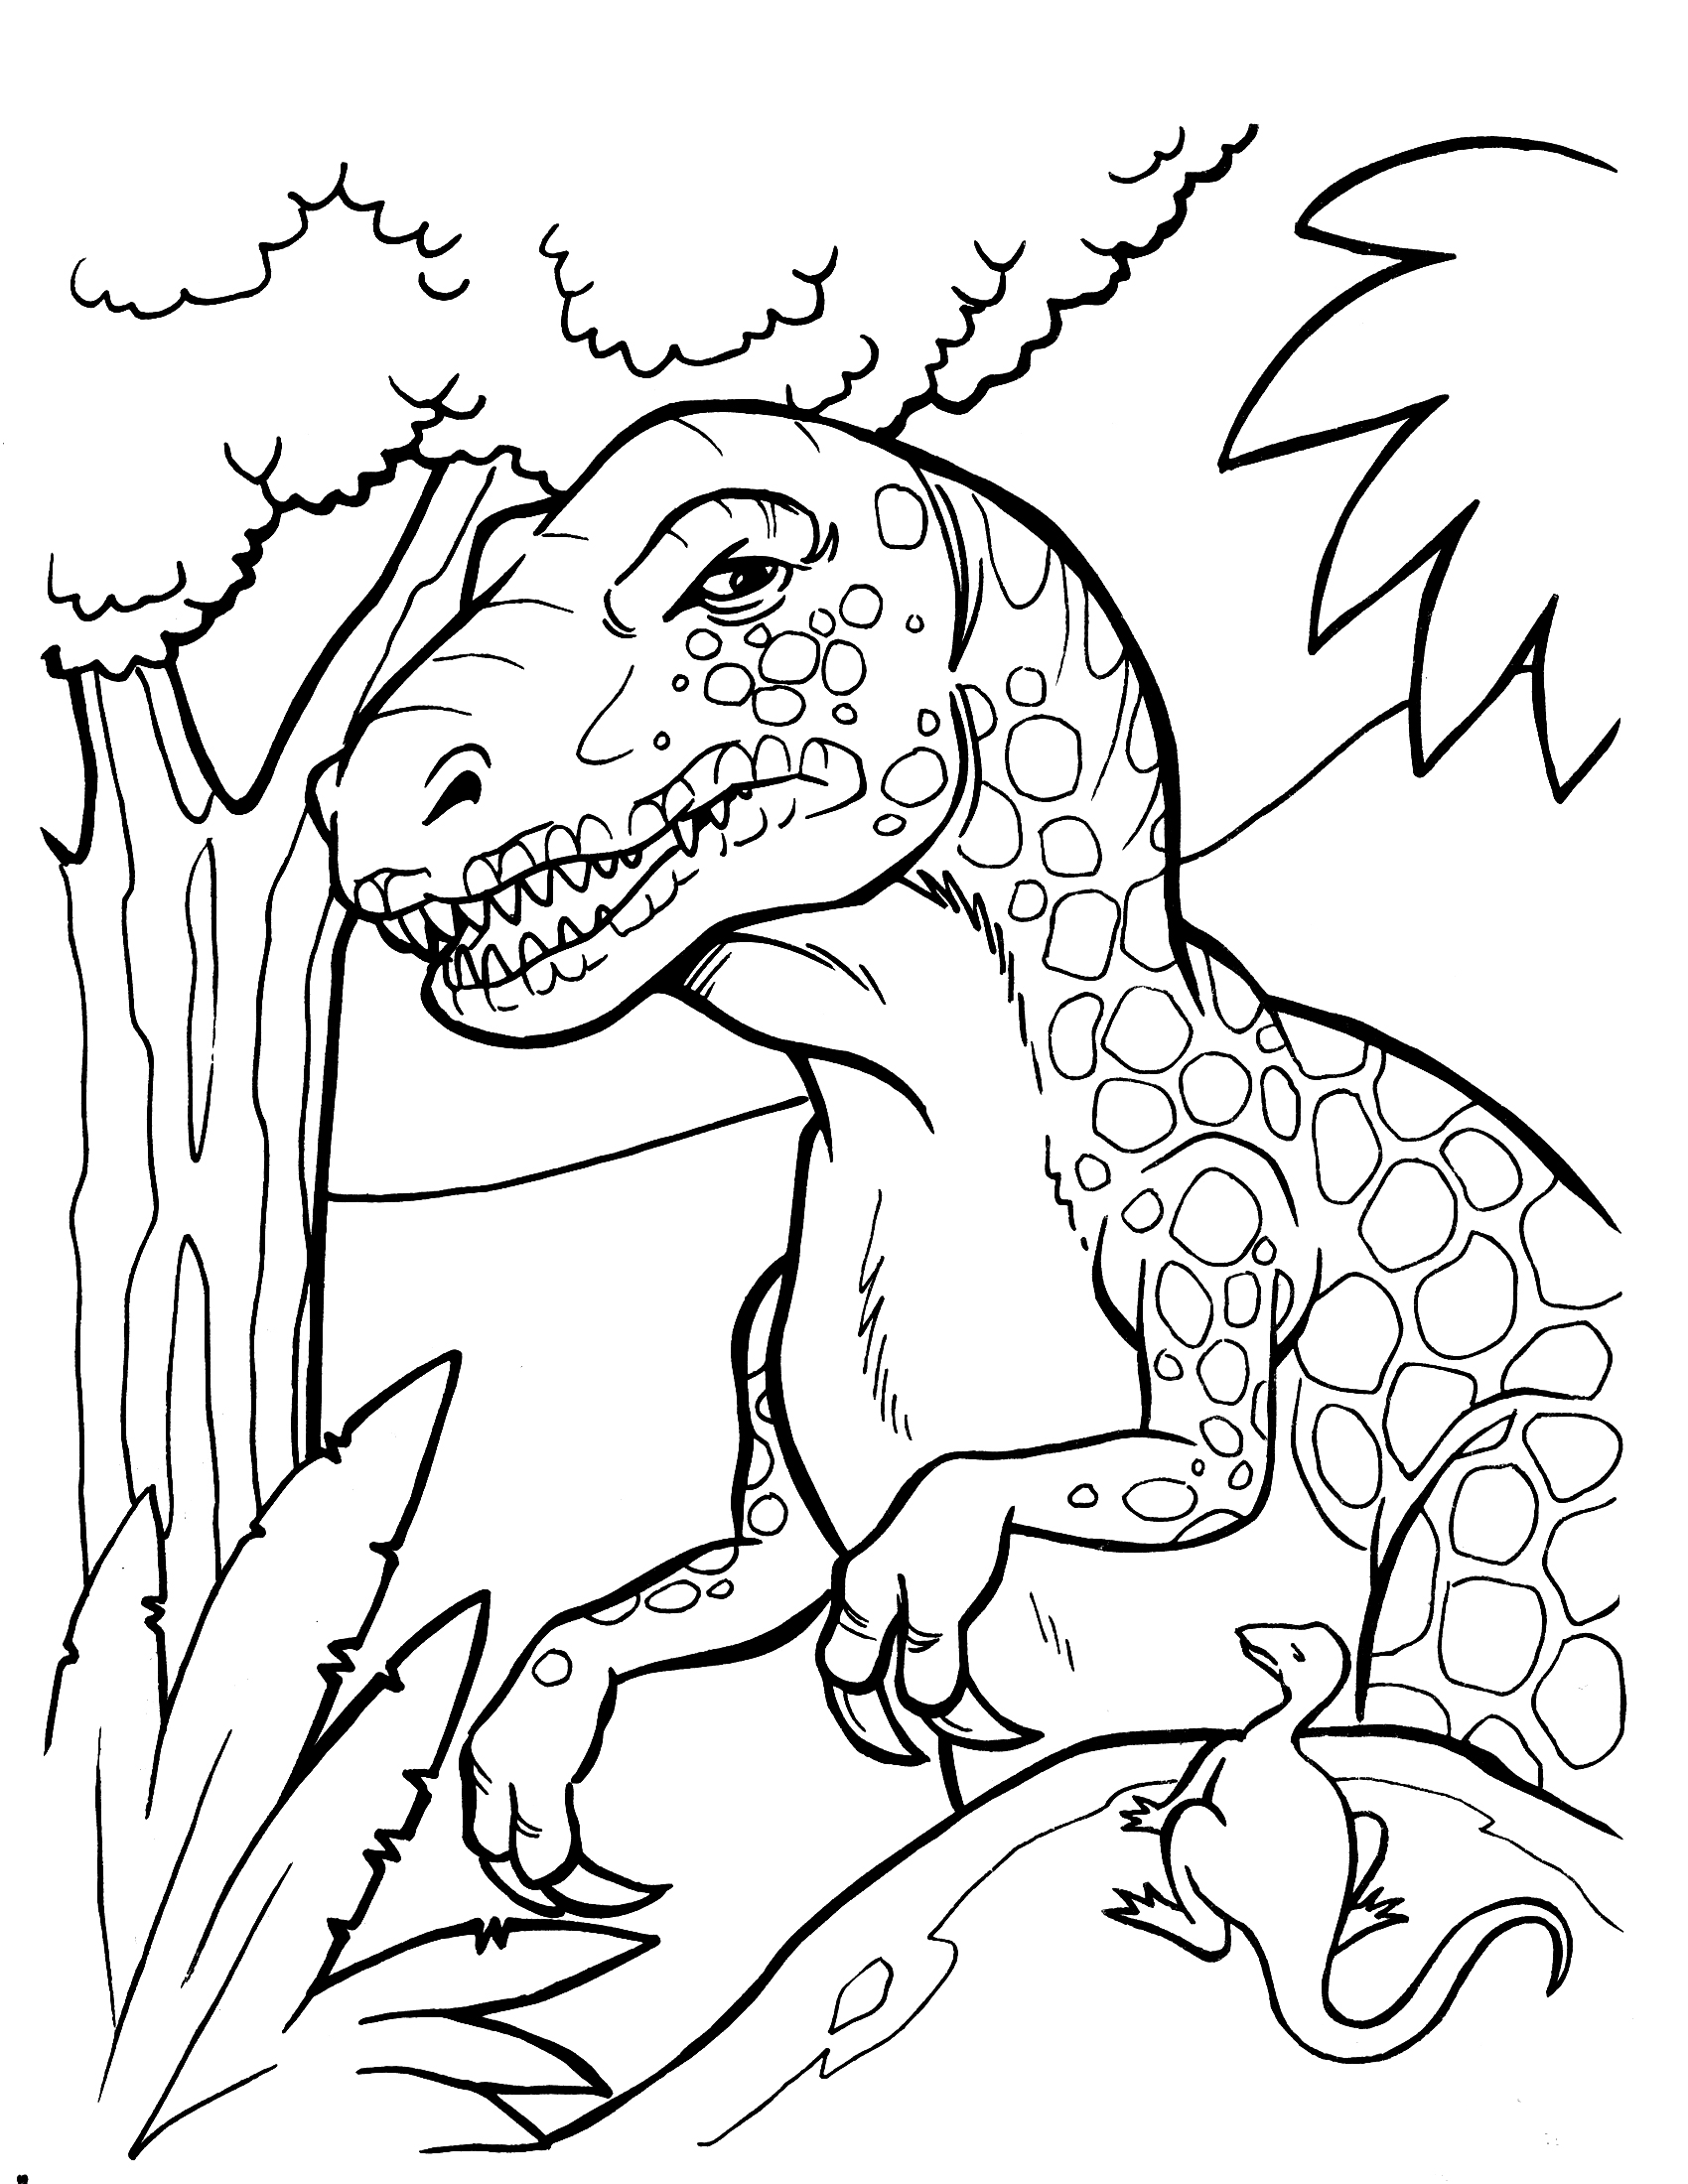 dinosaurs colouring pages coloring pages dinosaur free printable coloring pages dinosaurs pages colouring